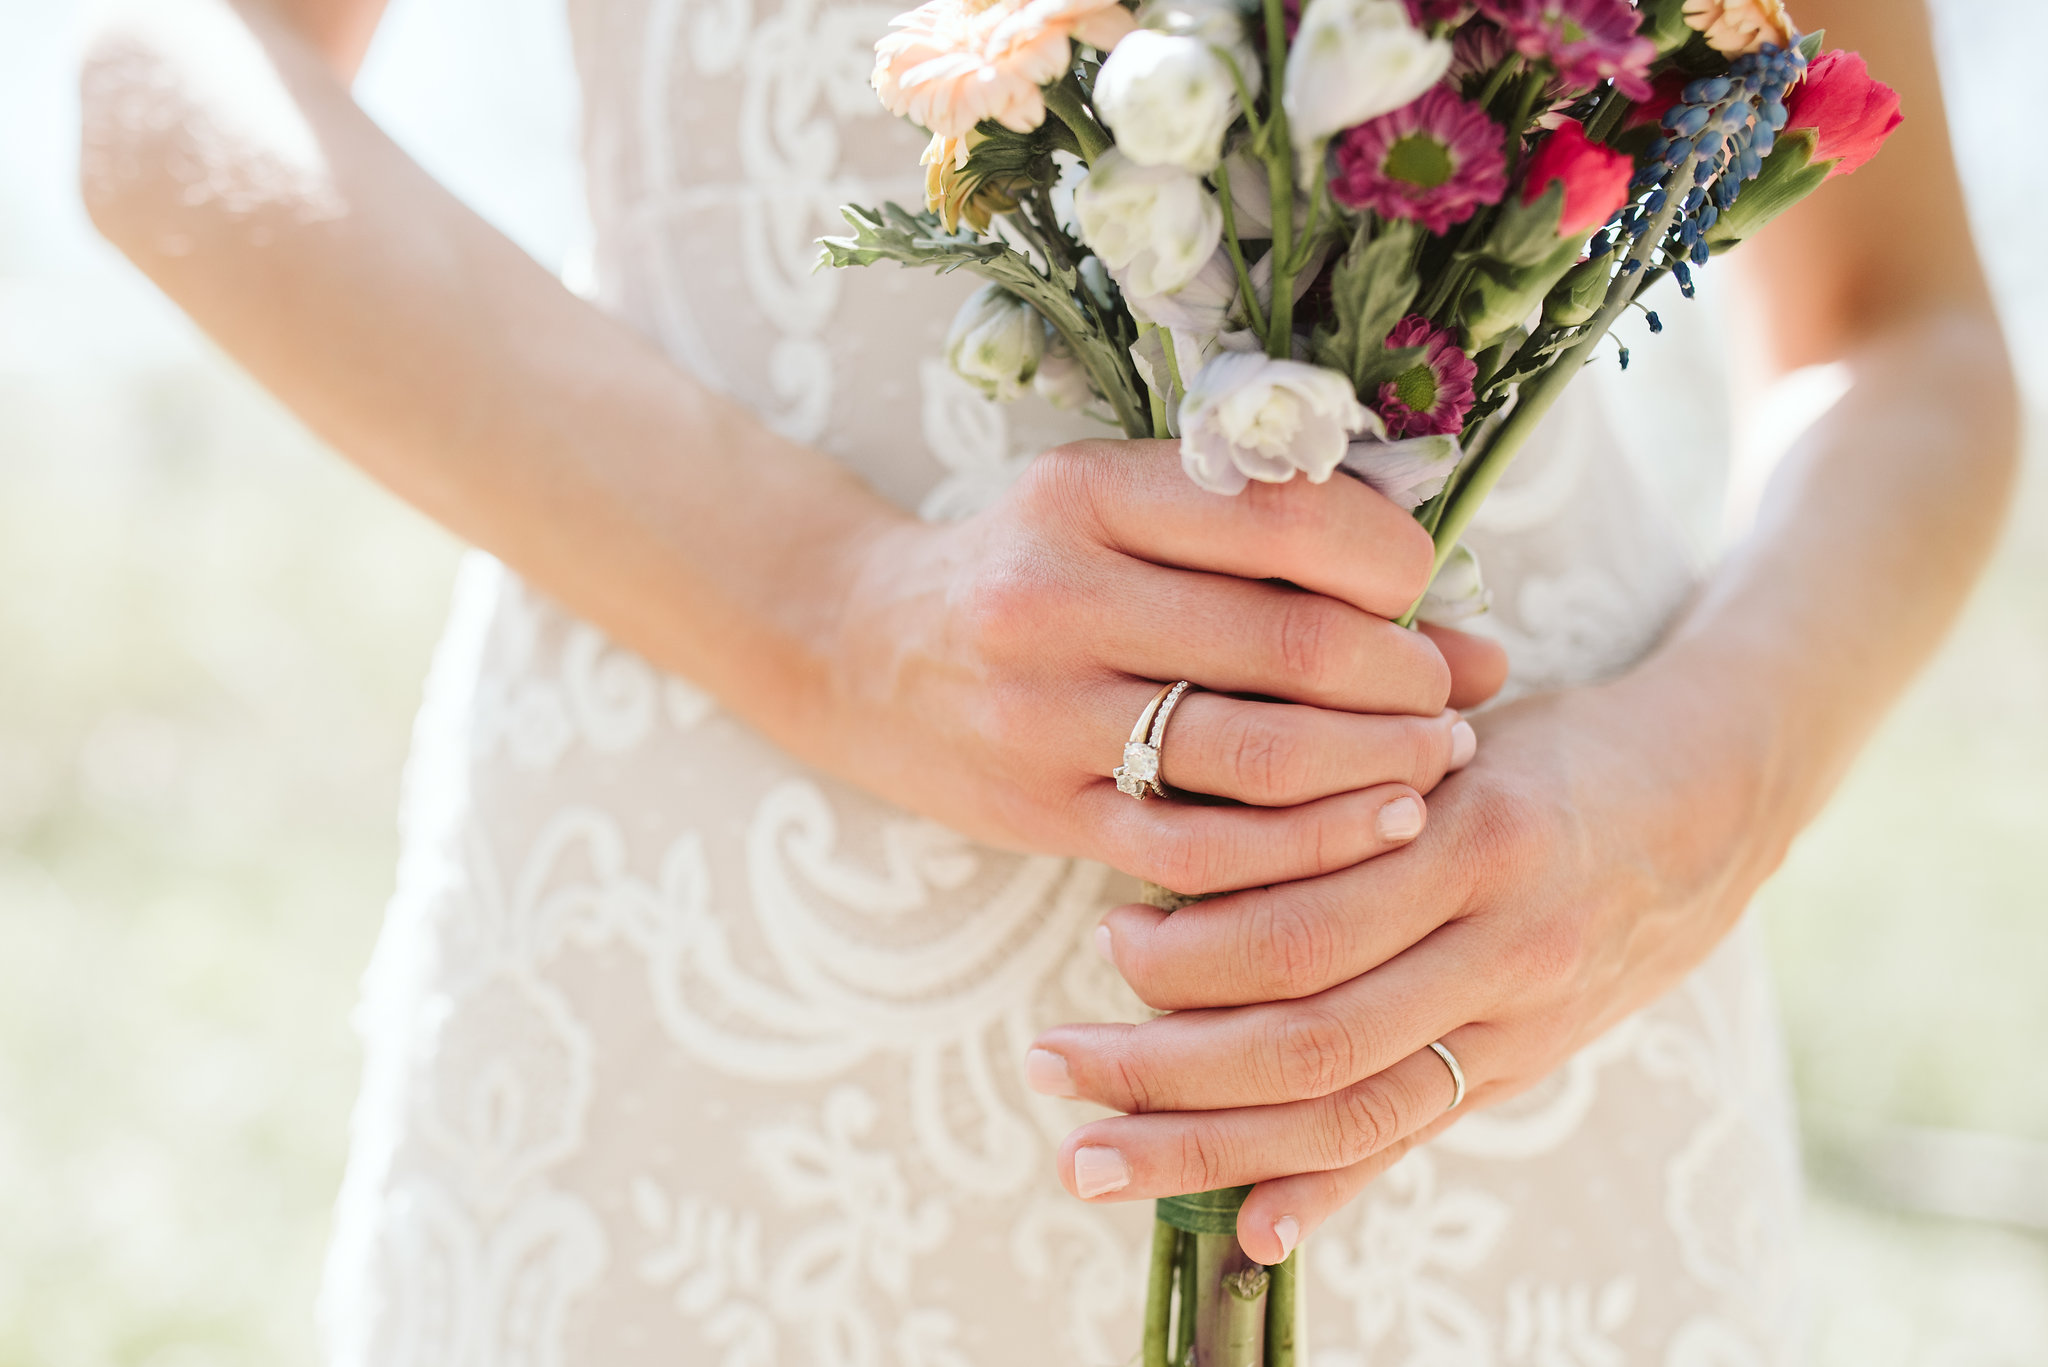 Spring Outdoor Wedding, Park, Baltimore Wedding Photographer, DIY, Classic, Upcycled, Garden Party, Romantic, Closeup of Bride's Rings, Purple and White Wildflowers